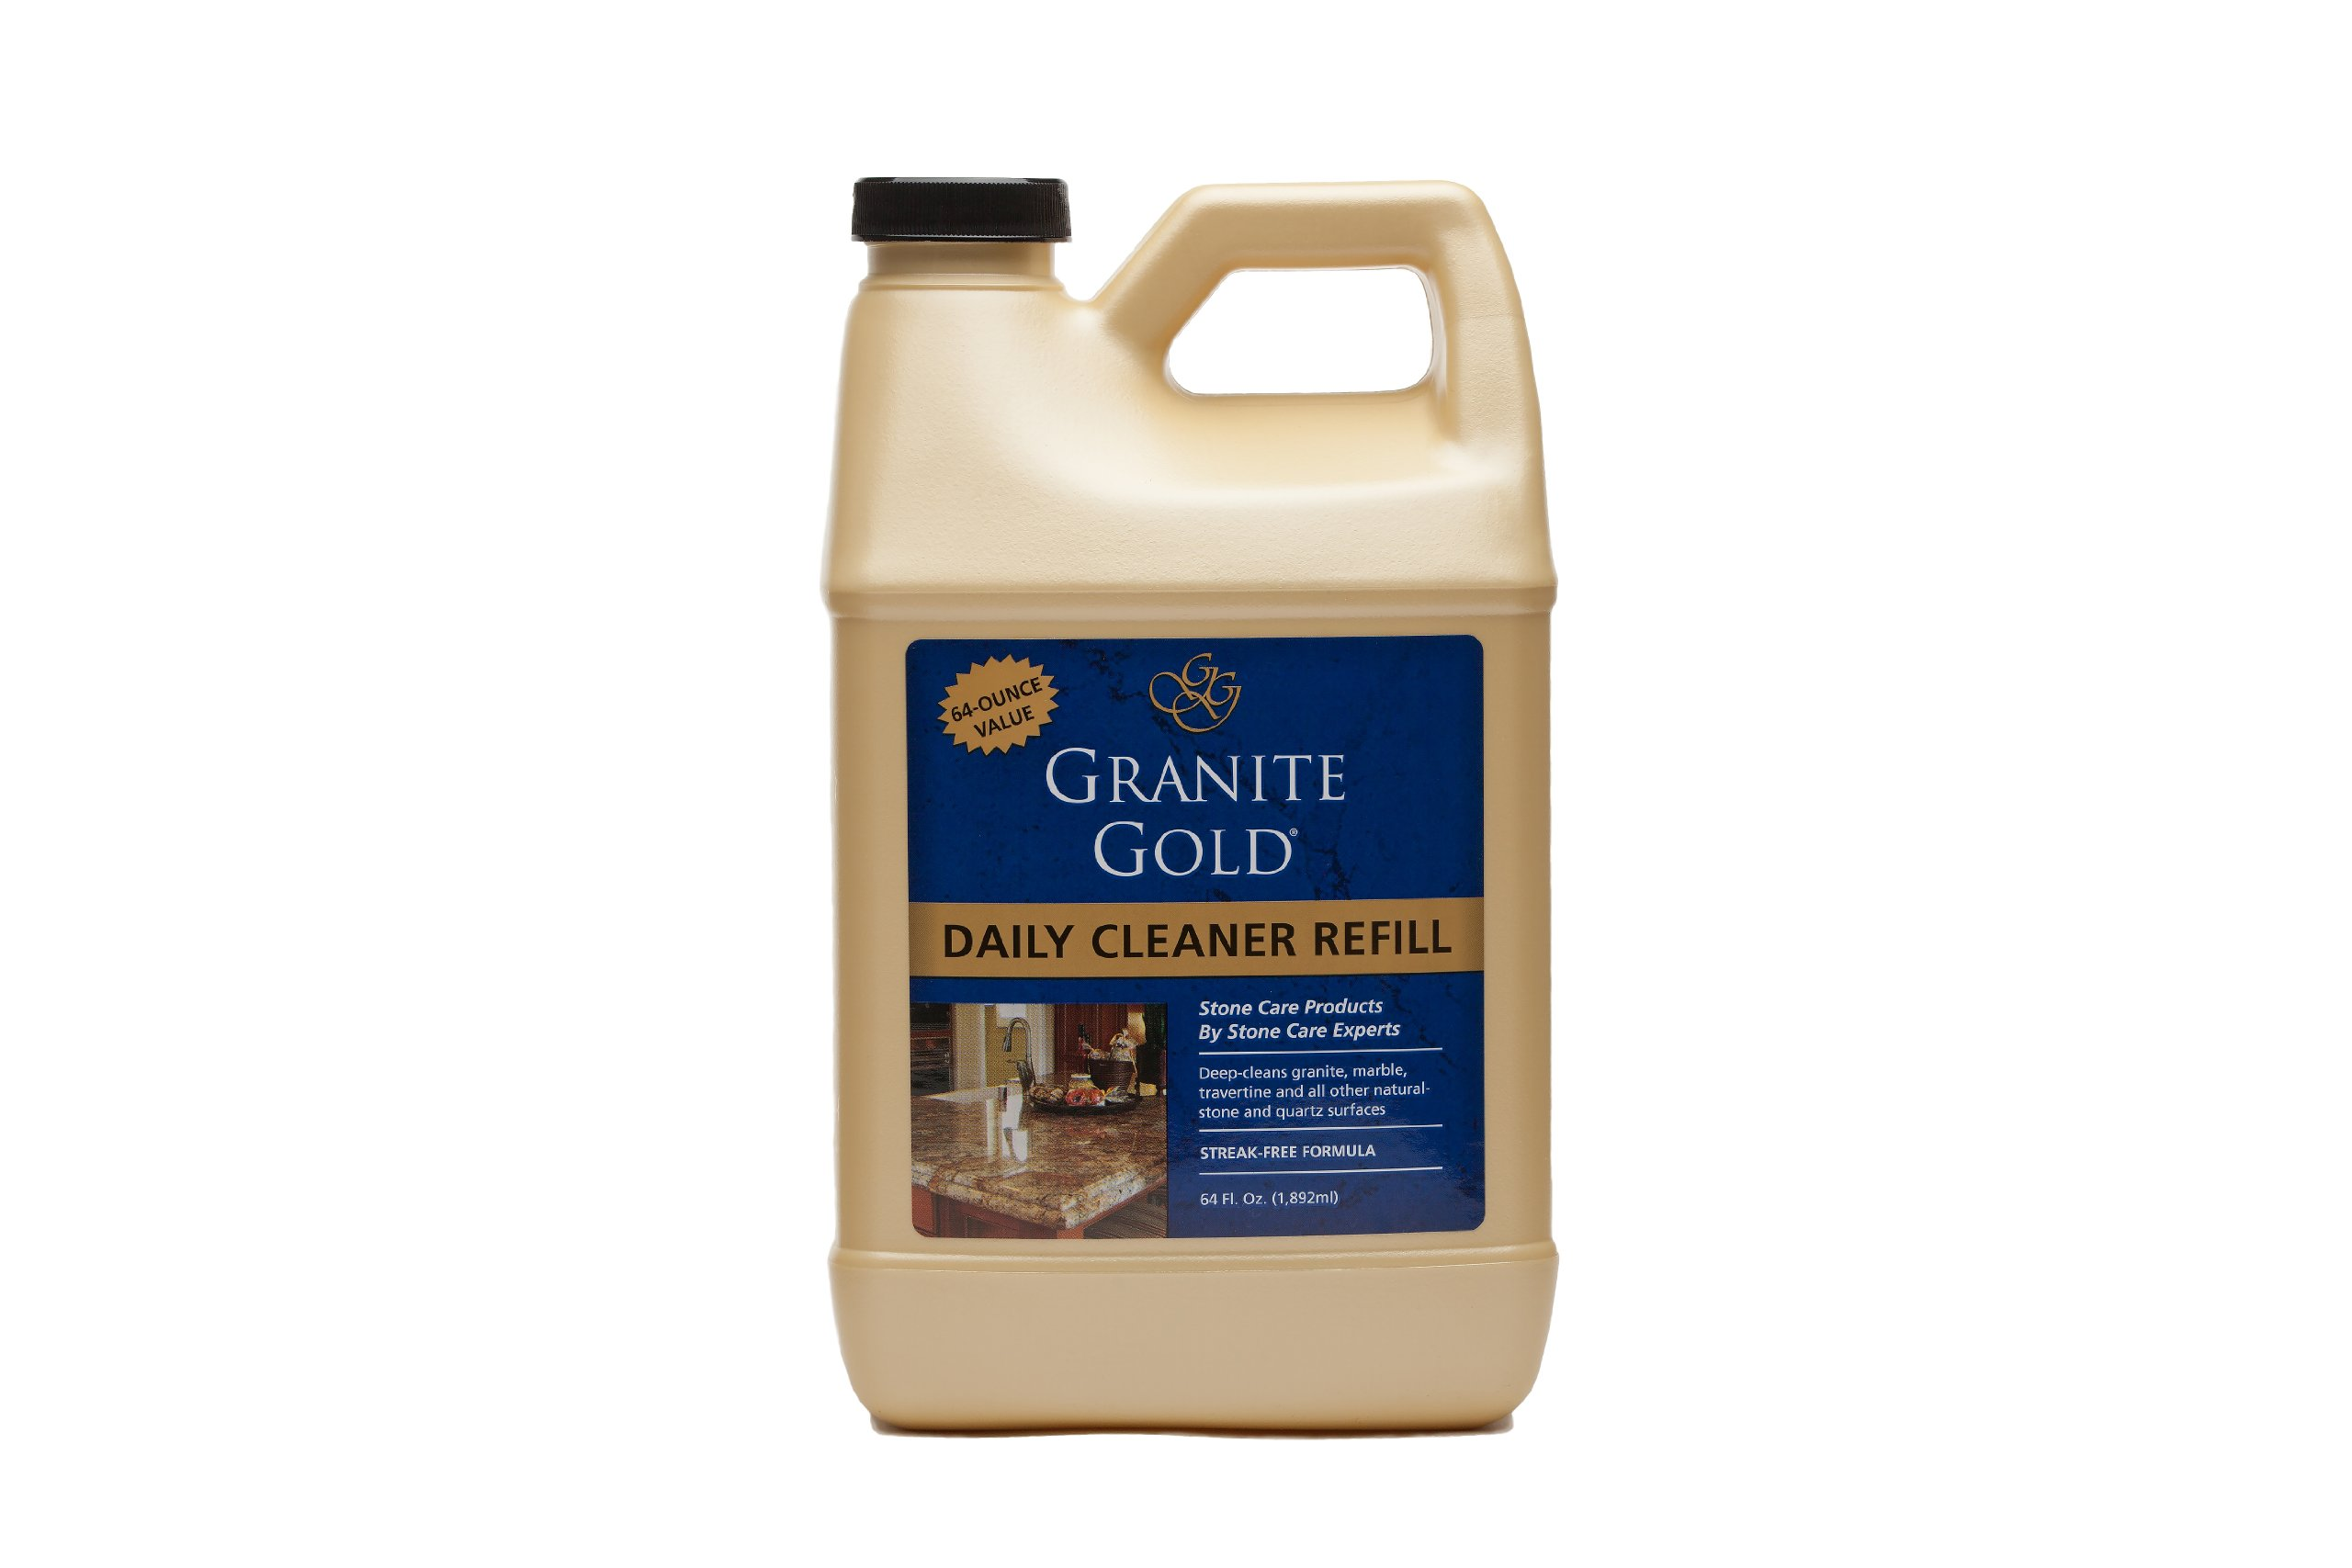 Granite Gold Daily Cleaner Refill - Streak-Free Granite Cleaner and Stone Cleaning Formula, Made In The USA - 64 Ounces